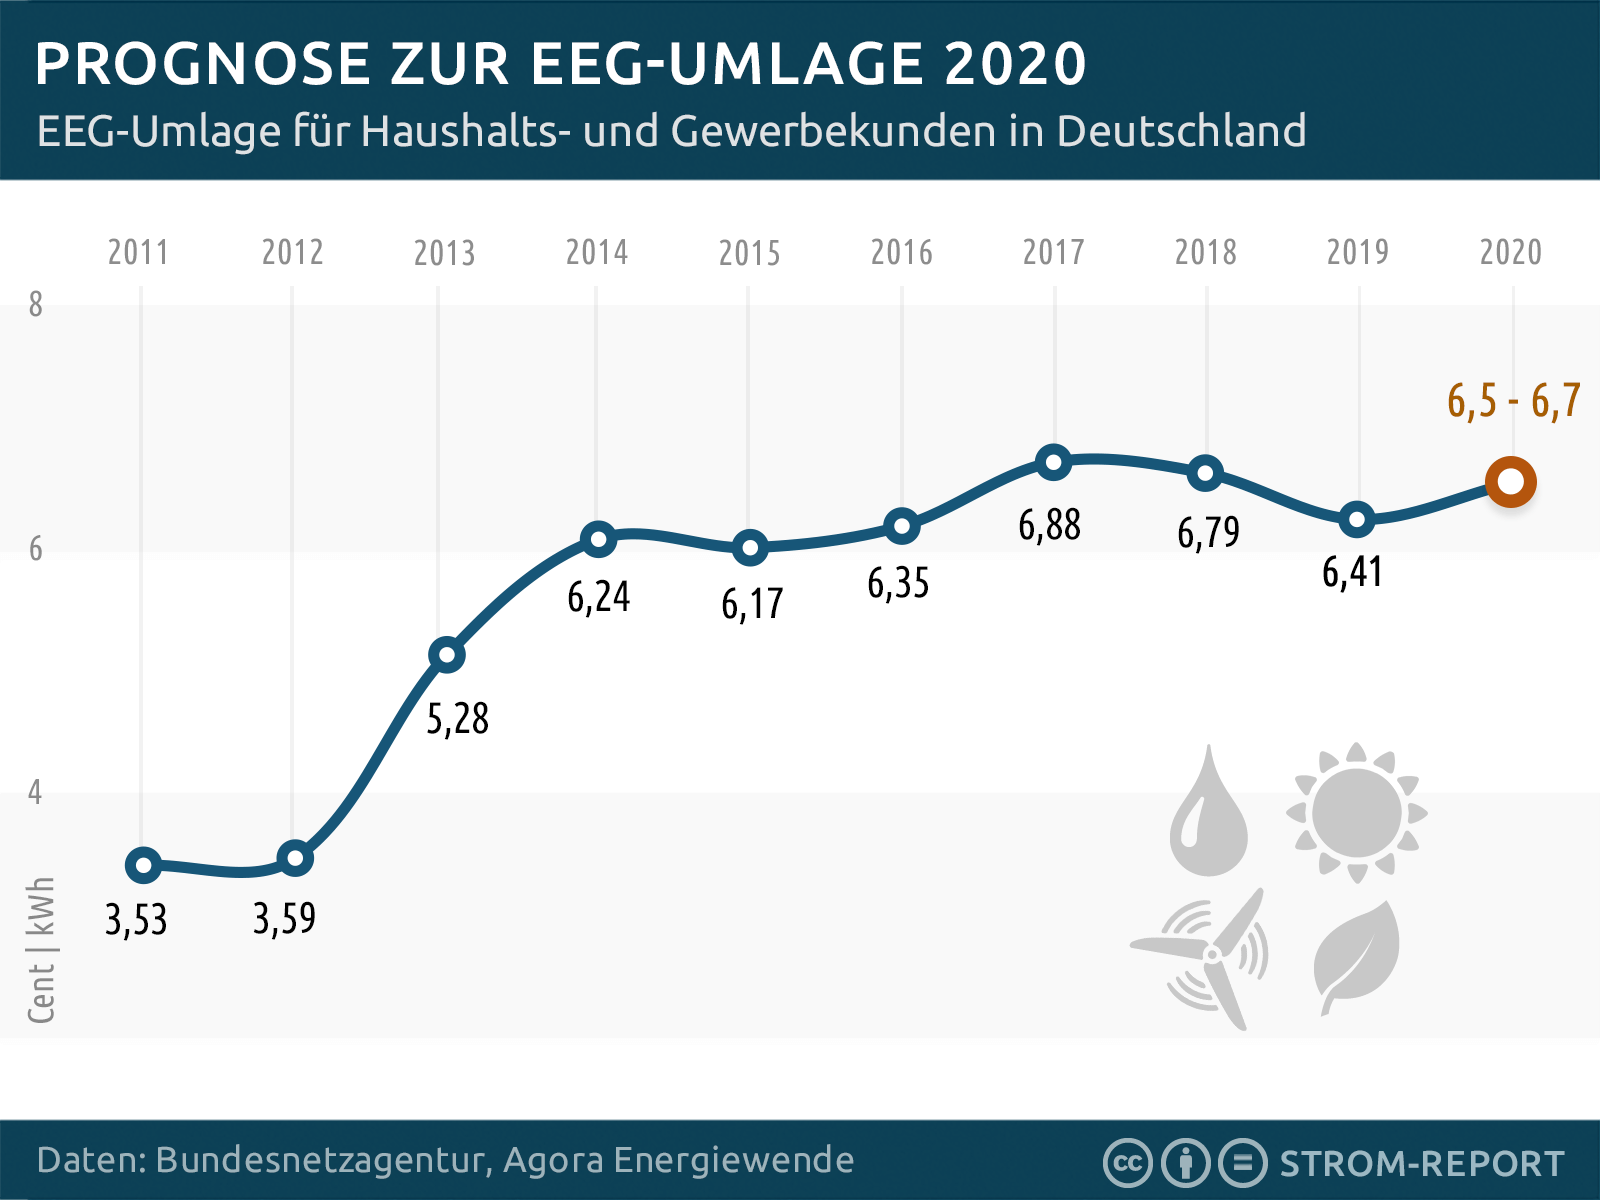 EEG Umlage 2020 Prognose